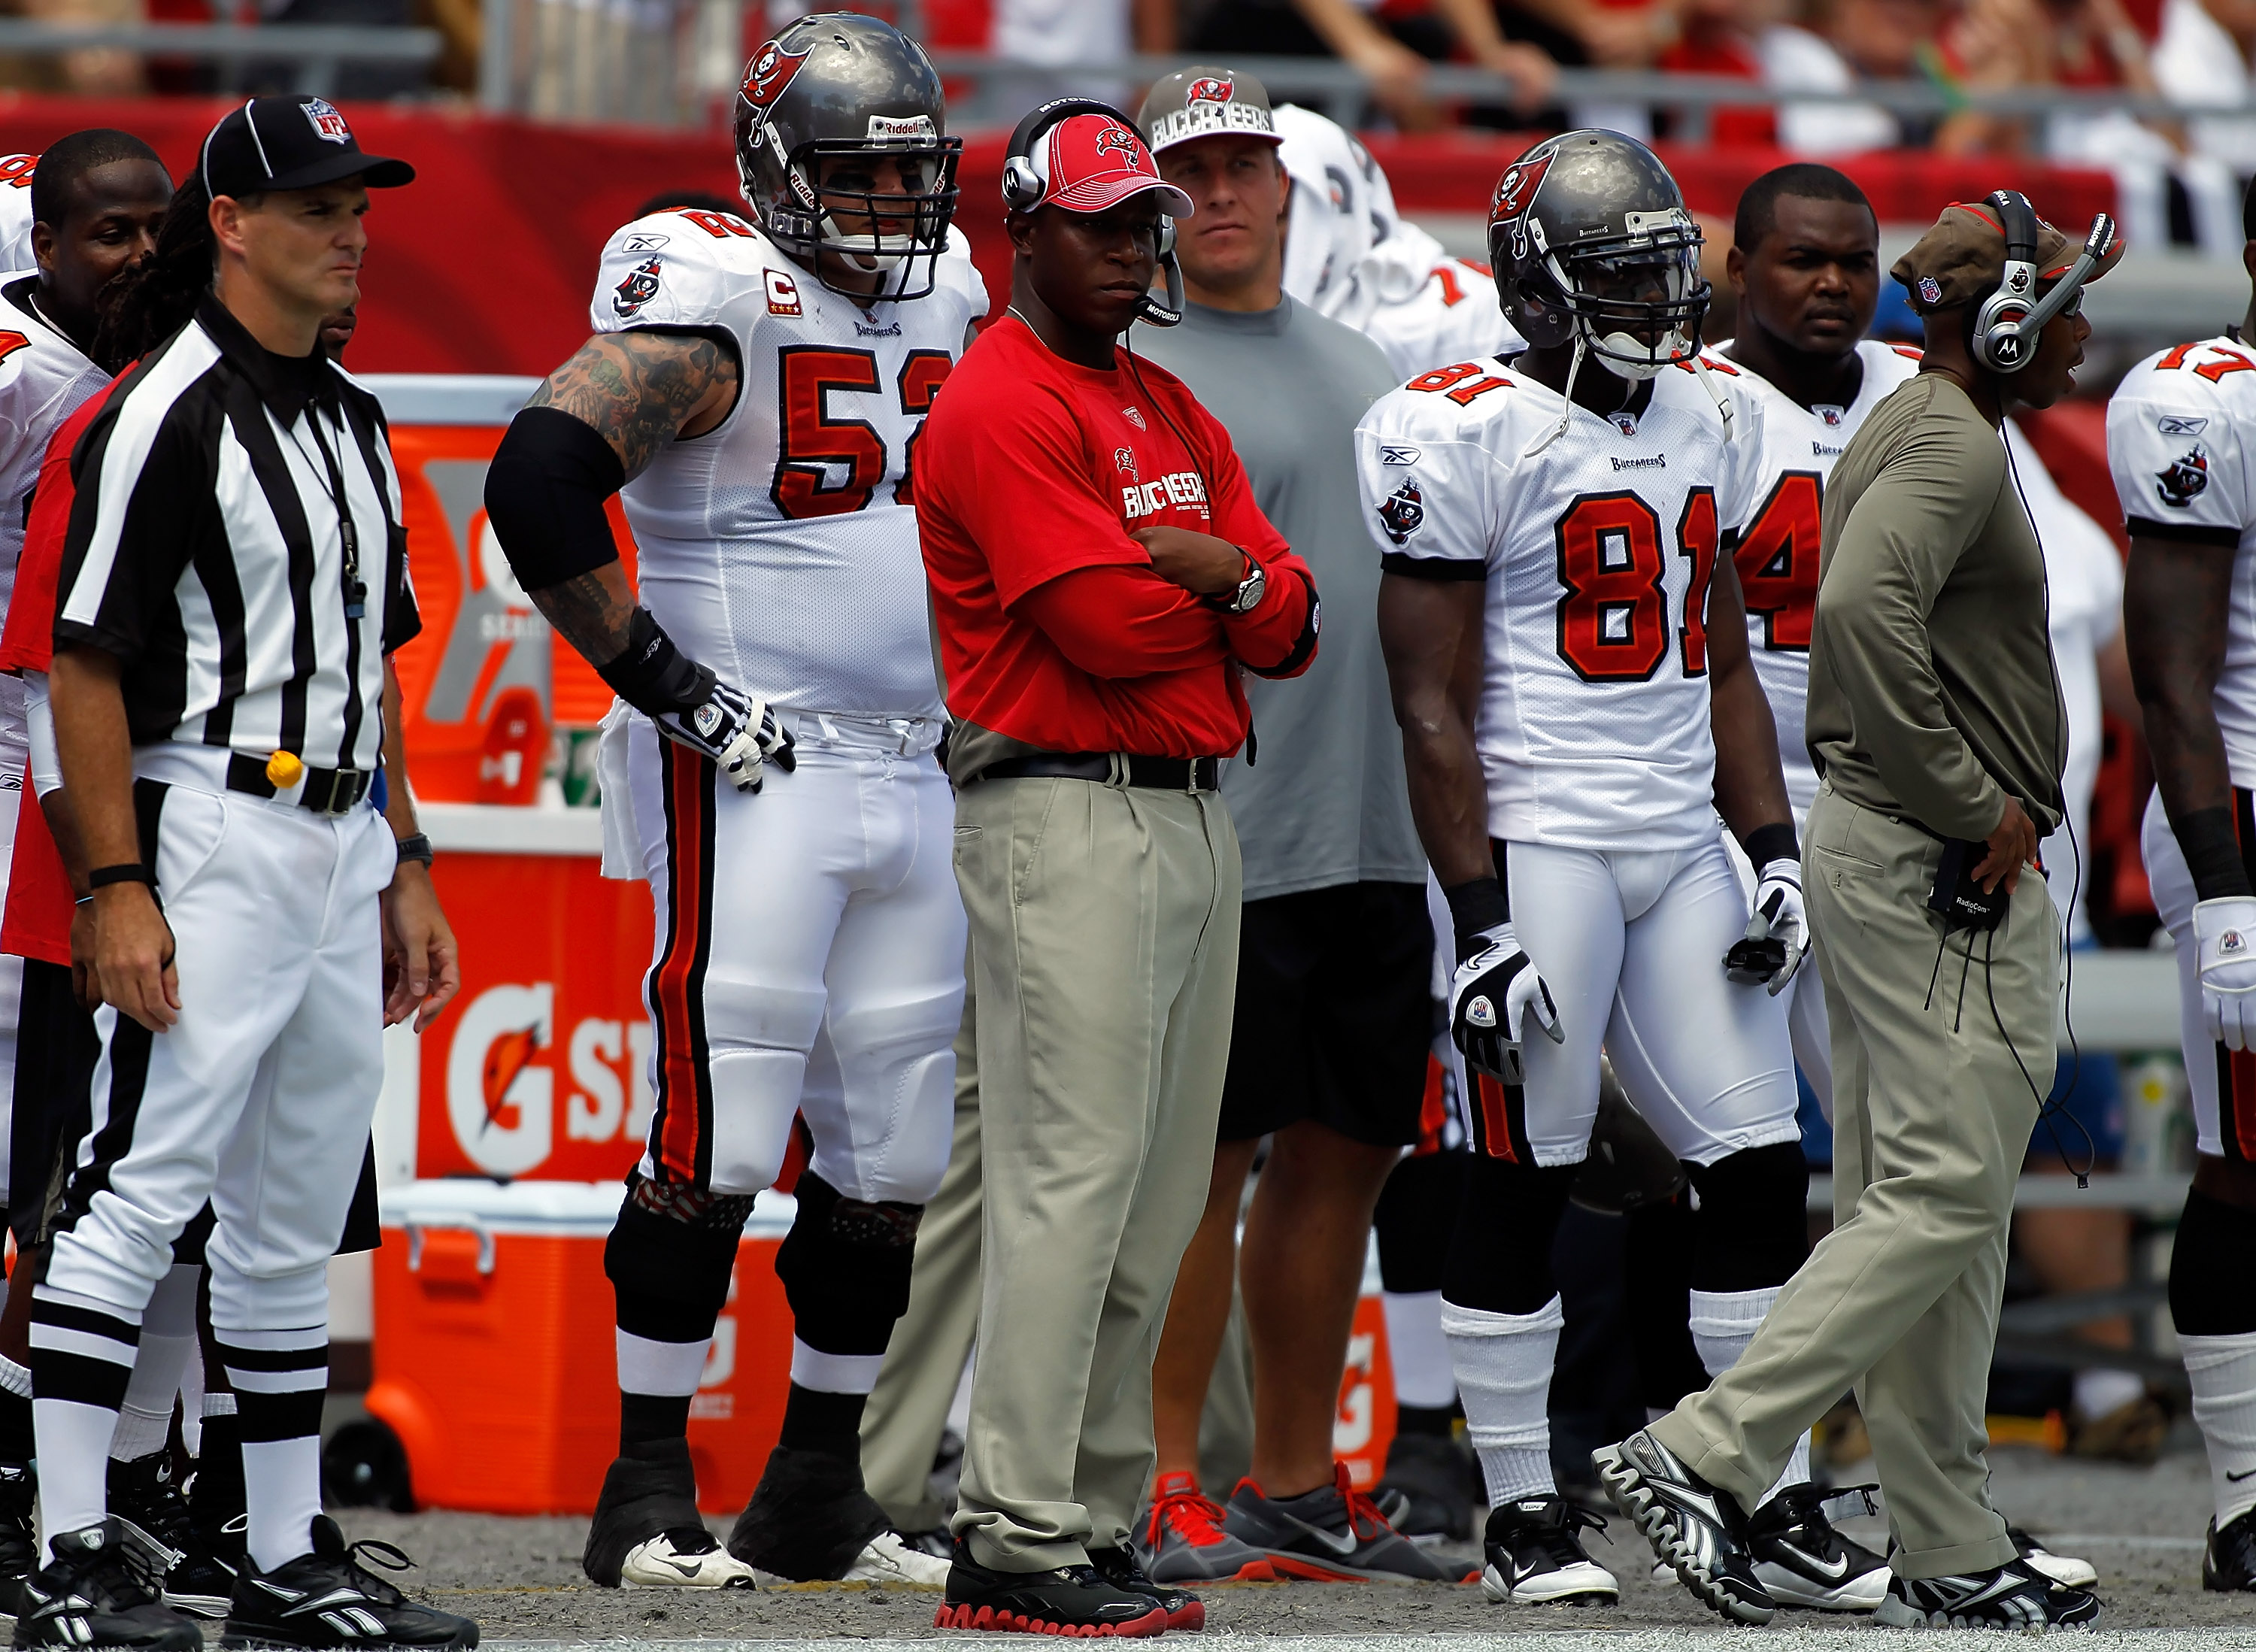 TAMPA, FL - SEPTEMBER 26:  Head coach Raheem Morris of the Tampa Bay Buccaneers watches his team against the Pittsburgh Steelers during the game at Raymond James Stadium on September 26, 2010 in Tampa, Florida.  (Photo by J. Meric/Getty Images)